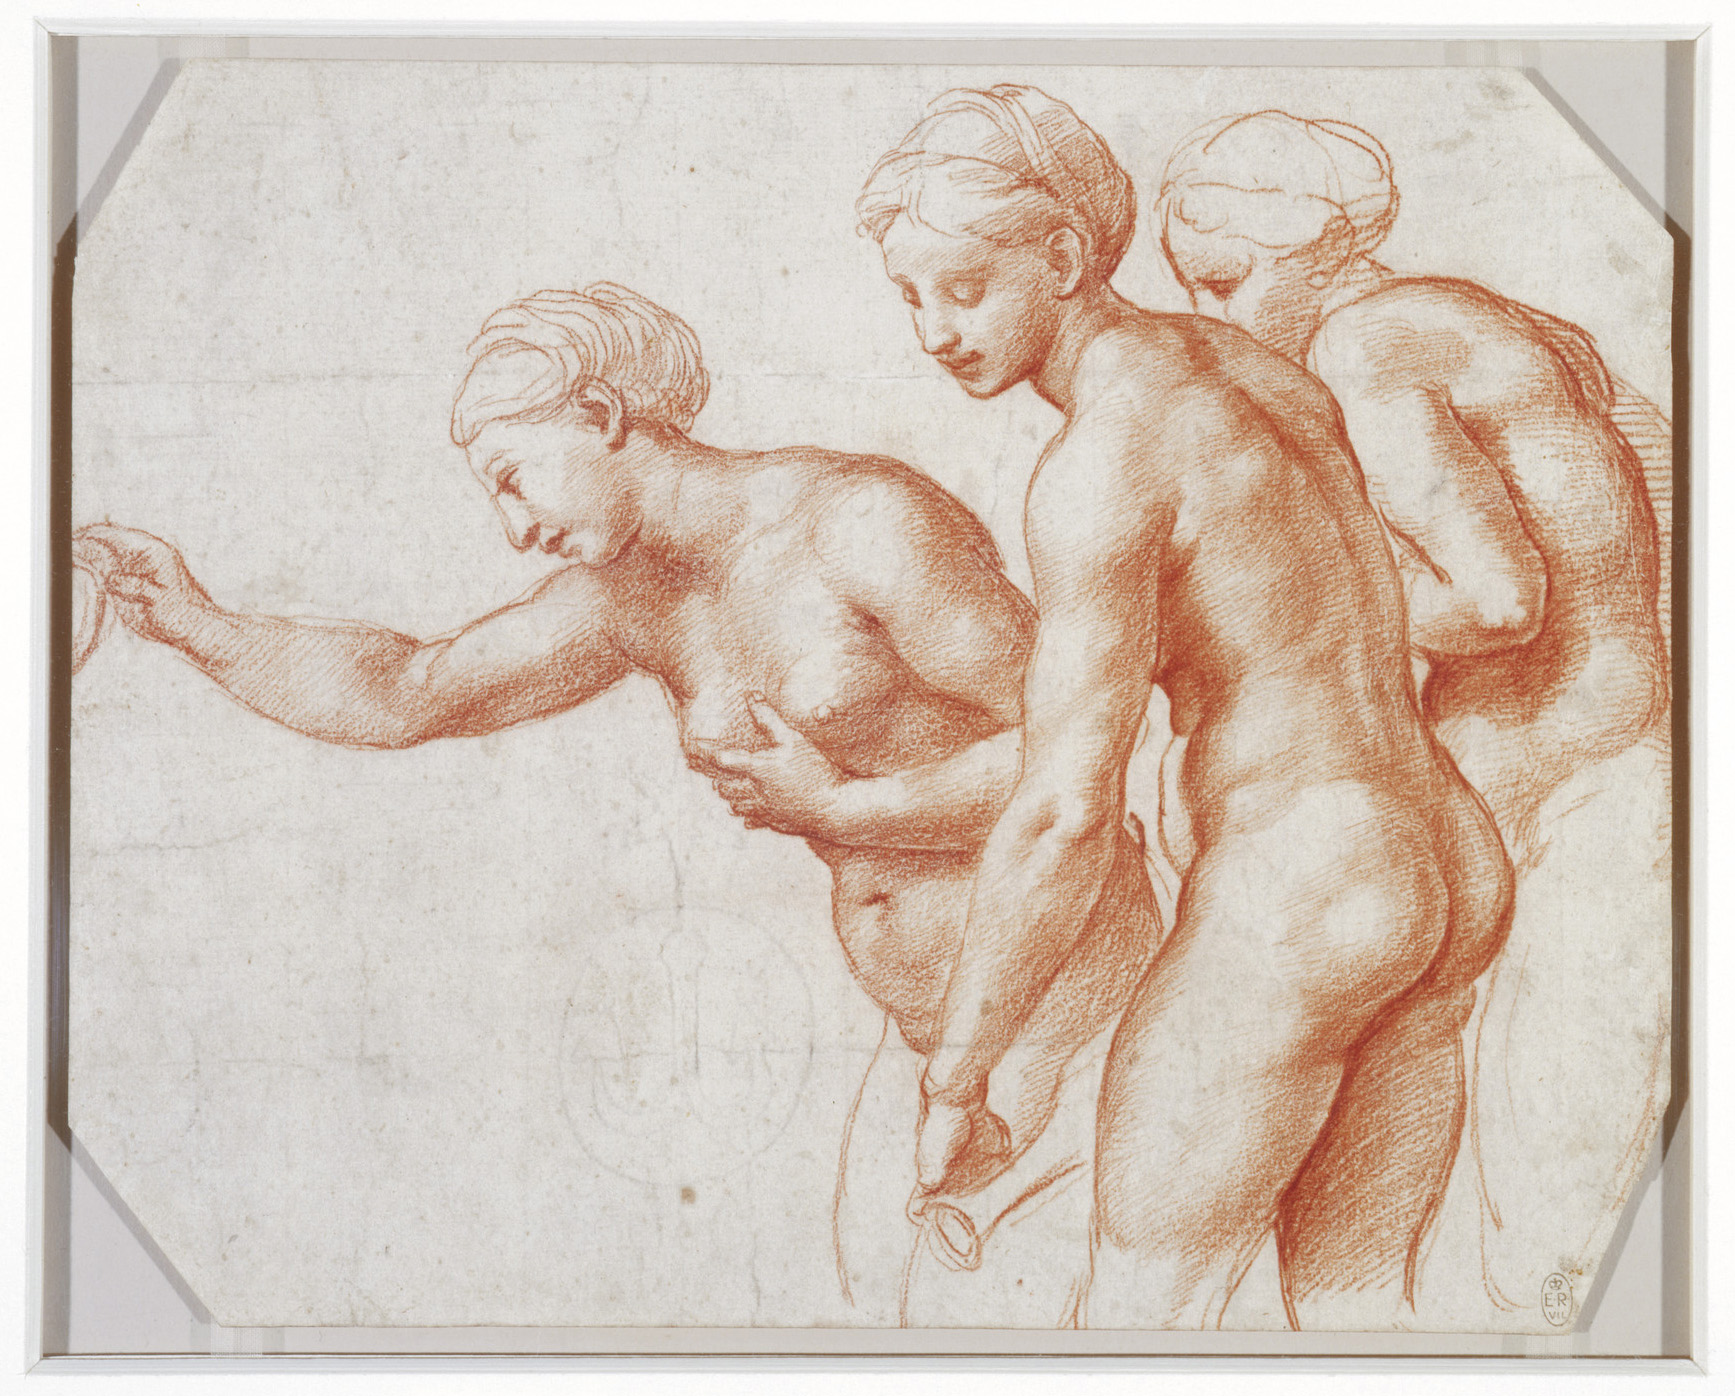 THE SAME PERSON DRAWN 3 TIMES IN RAPHAEL'S DRAWING OF THE 3 GRACES FOR THE CEILING OF THE LOGGIA OF THE VILLA FARNESINA IN ROME. THIS IS BY THE YOUNG MASTER AGED 34 IN 1517, THE CEILING FRESCO IN THE VILLA WAS THEN EXECUTED BY HIS PUPILS. 20X26 CM, RED CHALK ON PAPER (DRAWING IN COLLECTION OF H. M. THE QUEEN)